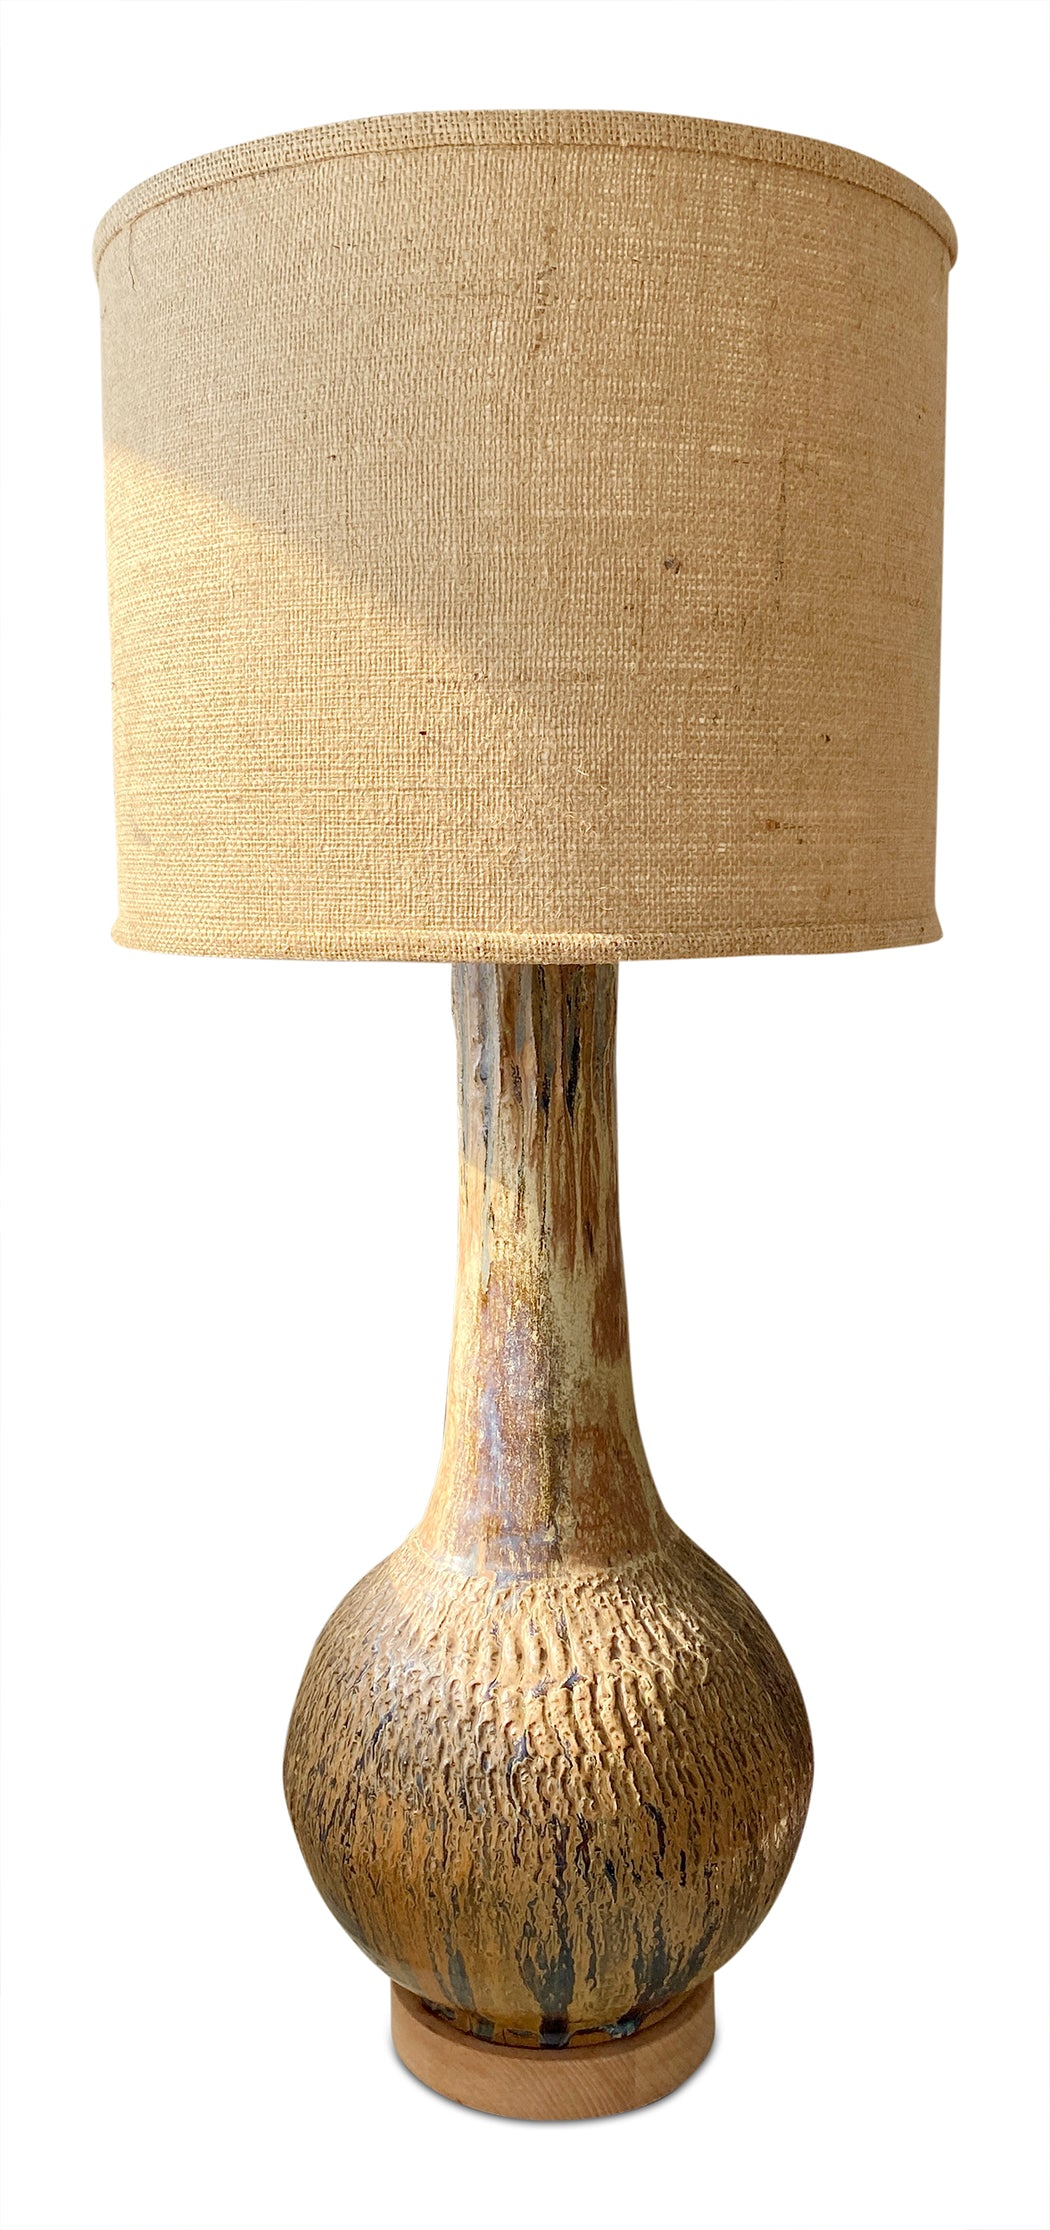 Drip Glaze Ceramic Table Lamp